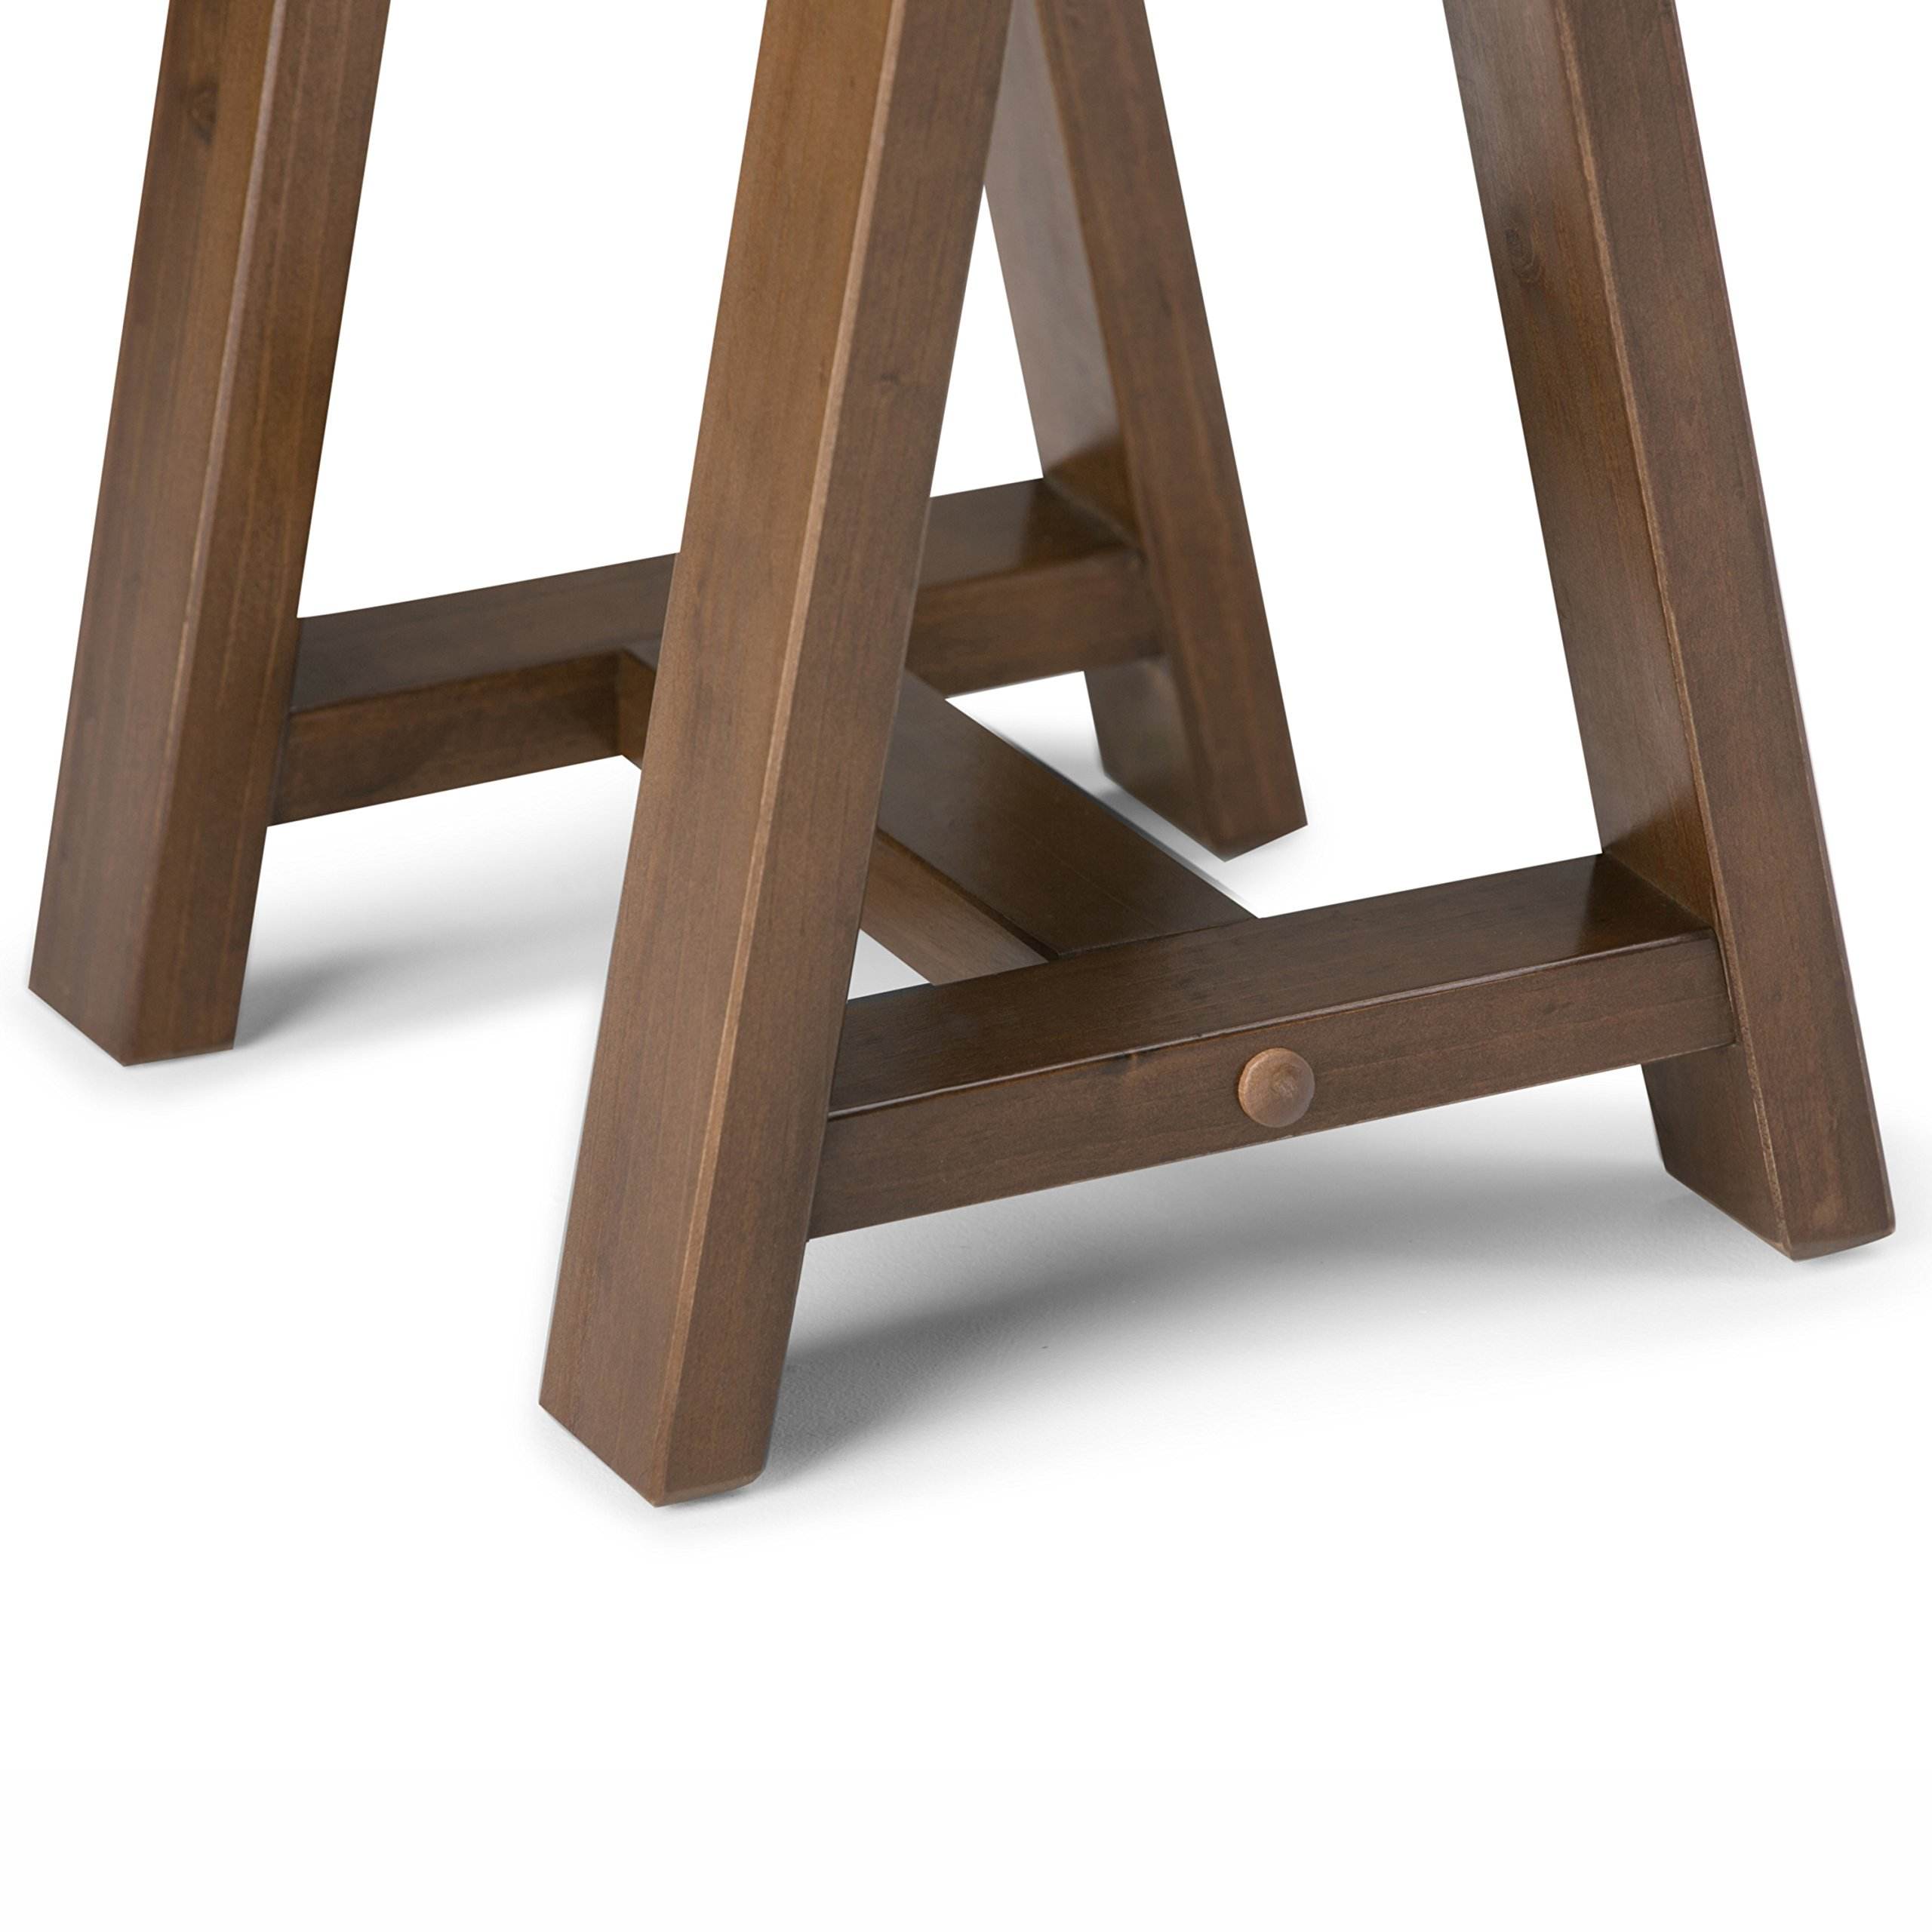 Simpli Home Sawhorse Solid Wood Wide Console Sofa Table, Medium Saddle Brown by Simpli Home (Image #4)